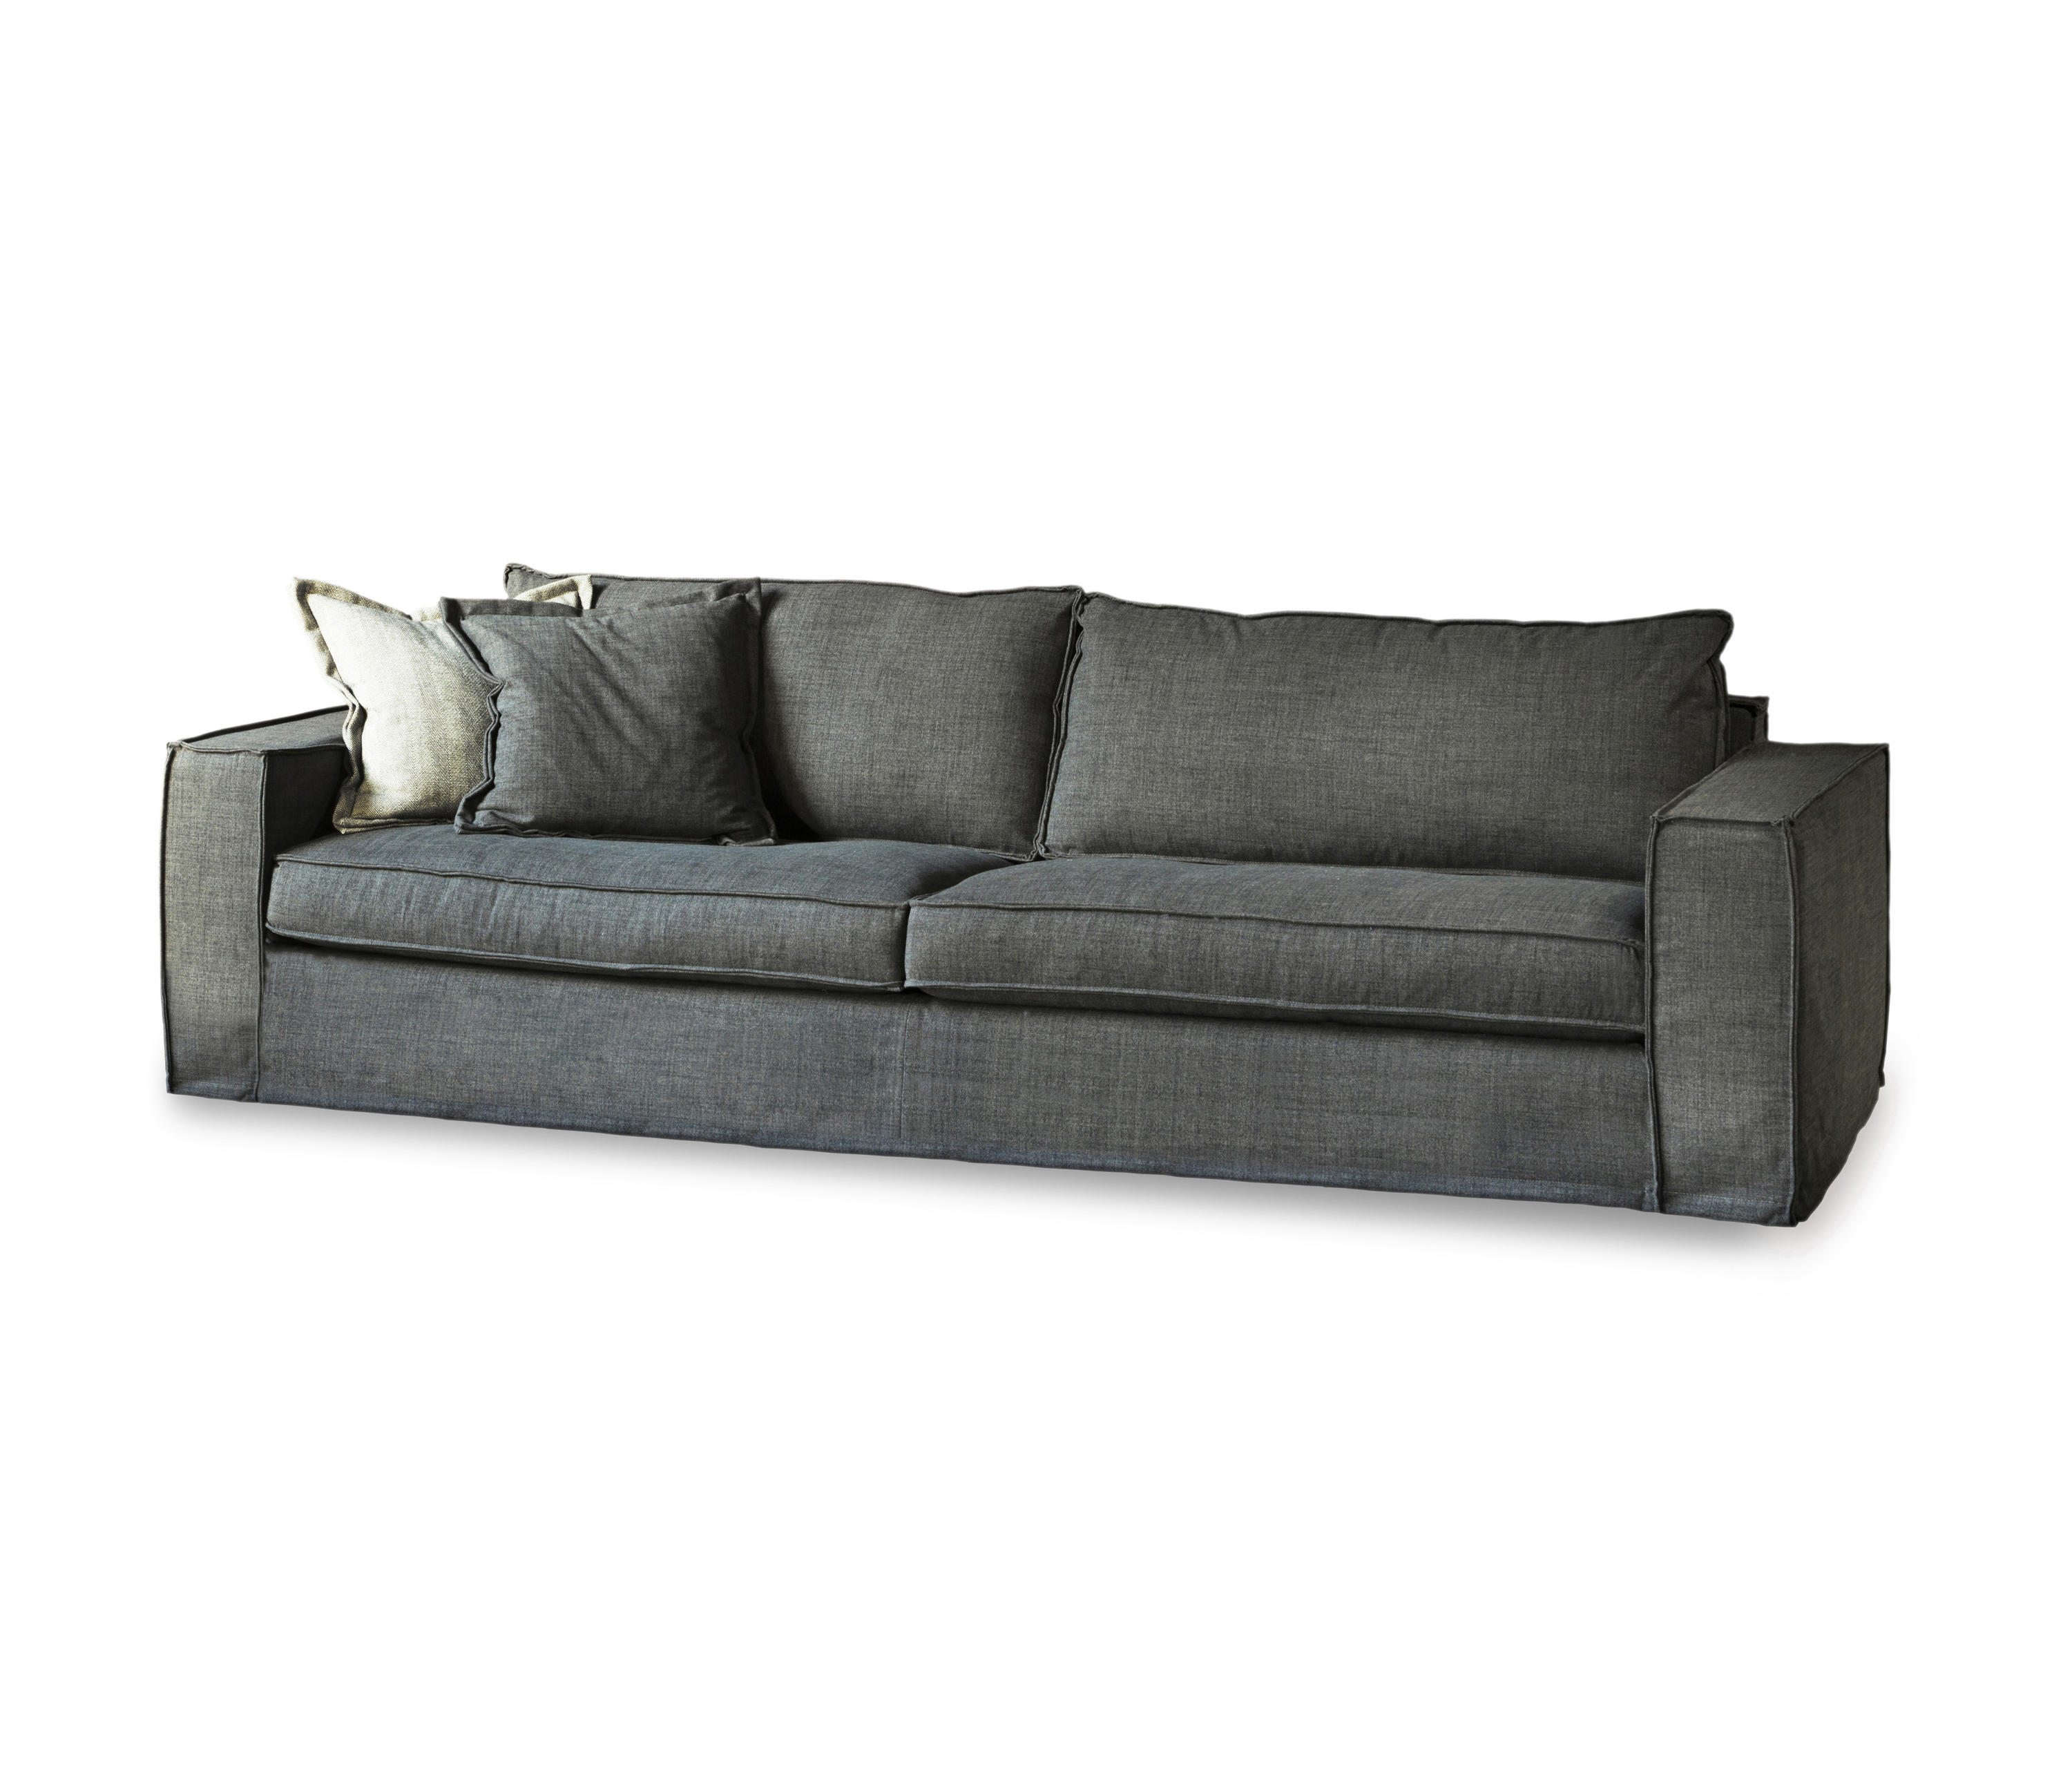 Schlafsofa York Key West Sofa Sofas From Villevenete Architonic